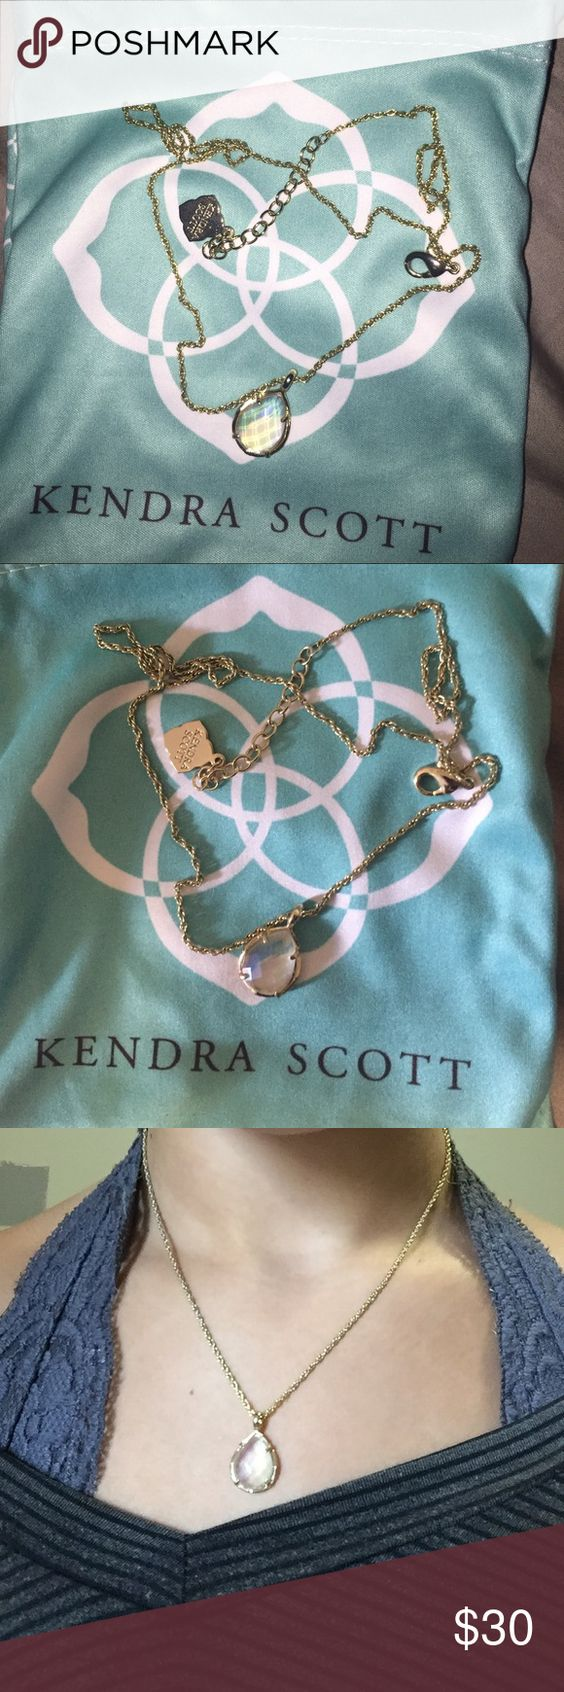 KENDRA SCOTT NECKLACE Clear (iridescent) kendra tear drop necklace! Not sure of the name. Beautiful necklace im just trying to downsize my kendra! In perfect condition. Modeled at its shortest length. Will come with dustbag. Kendra Scott Jewelry Necklaces